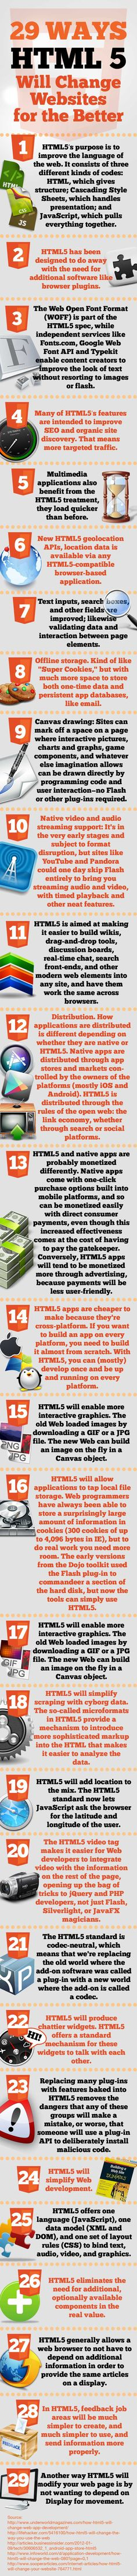 29 ways HTML5 will change websites for the better #infographic